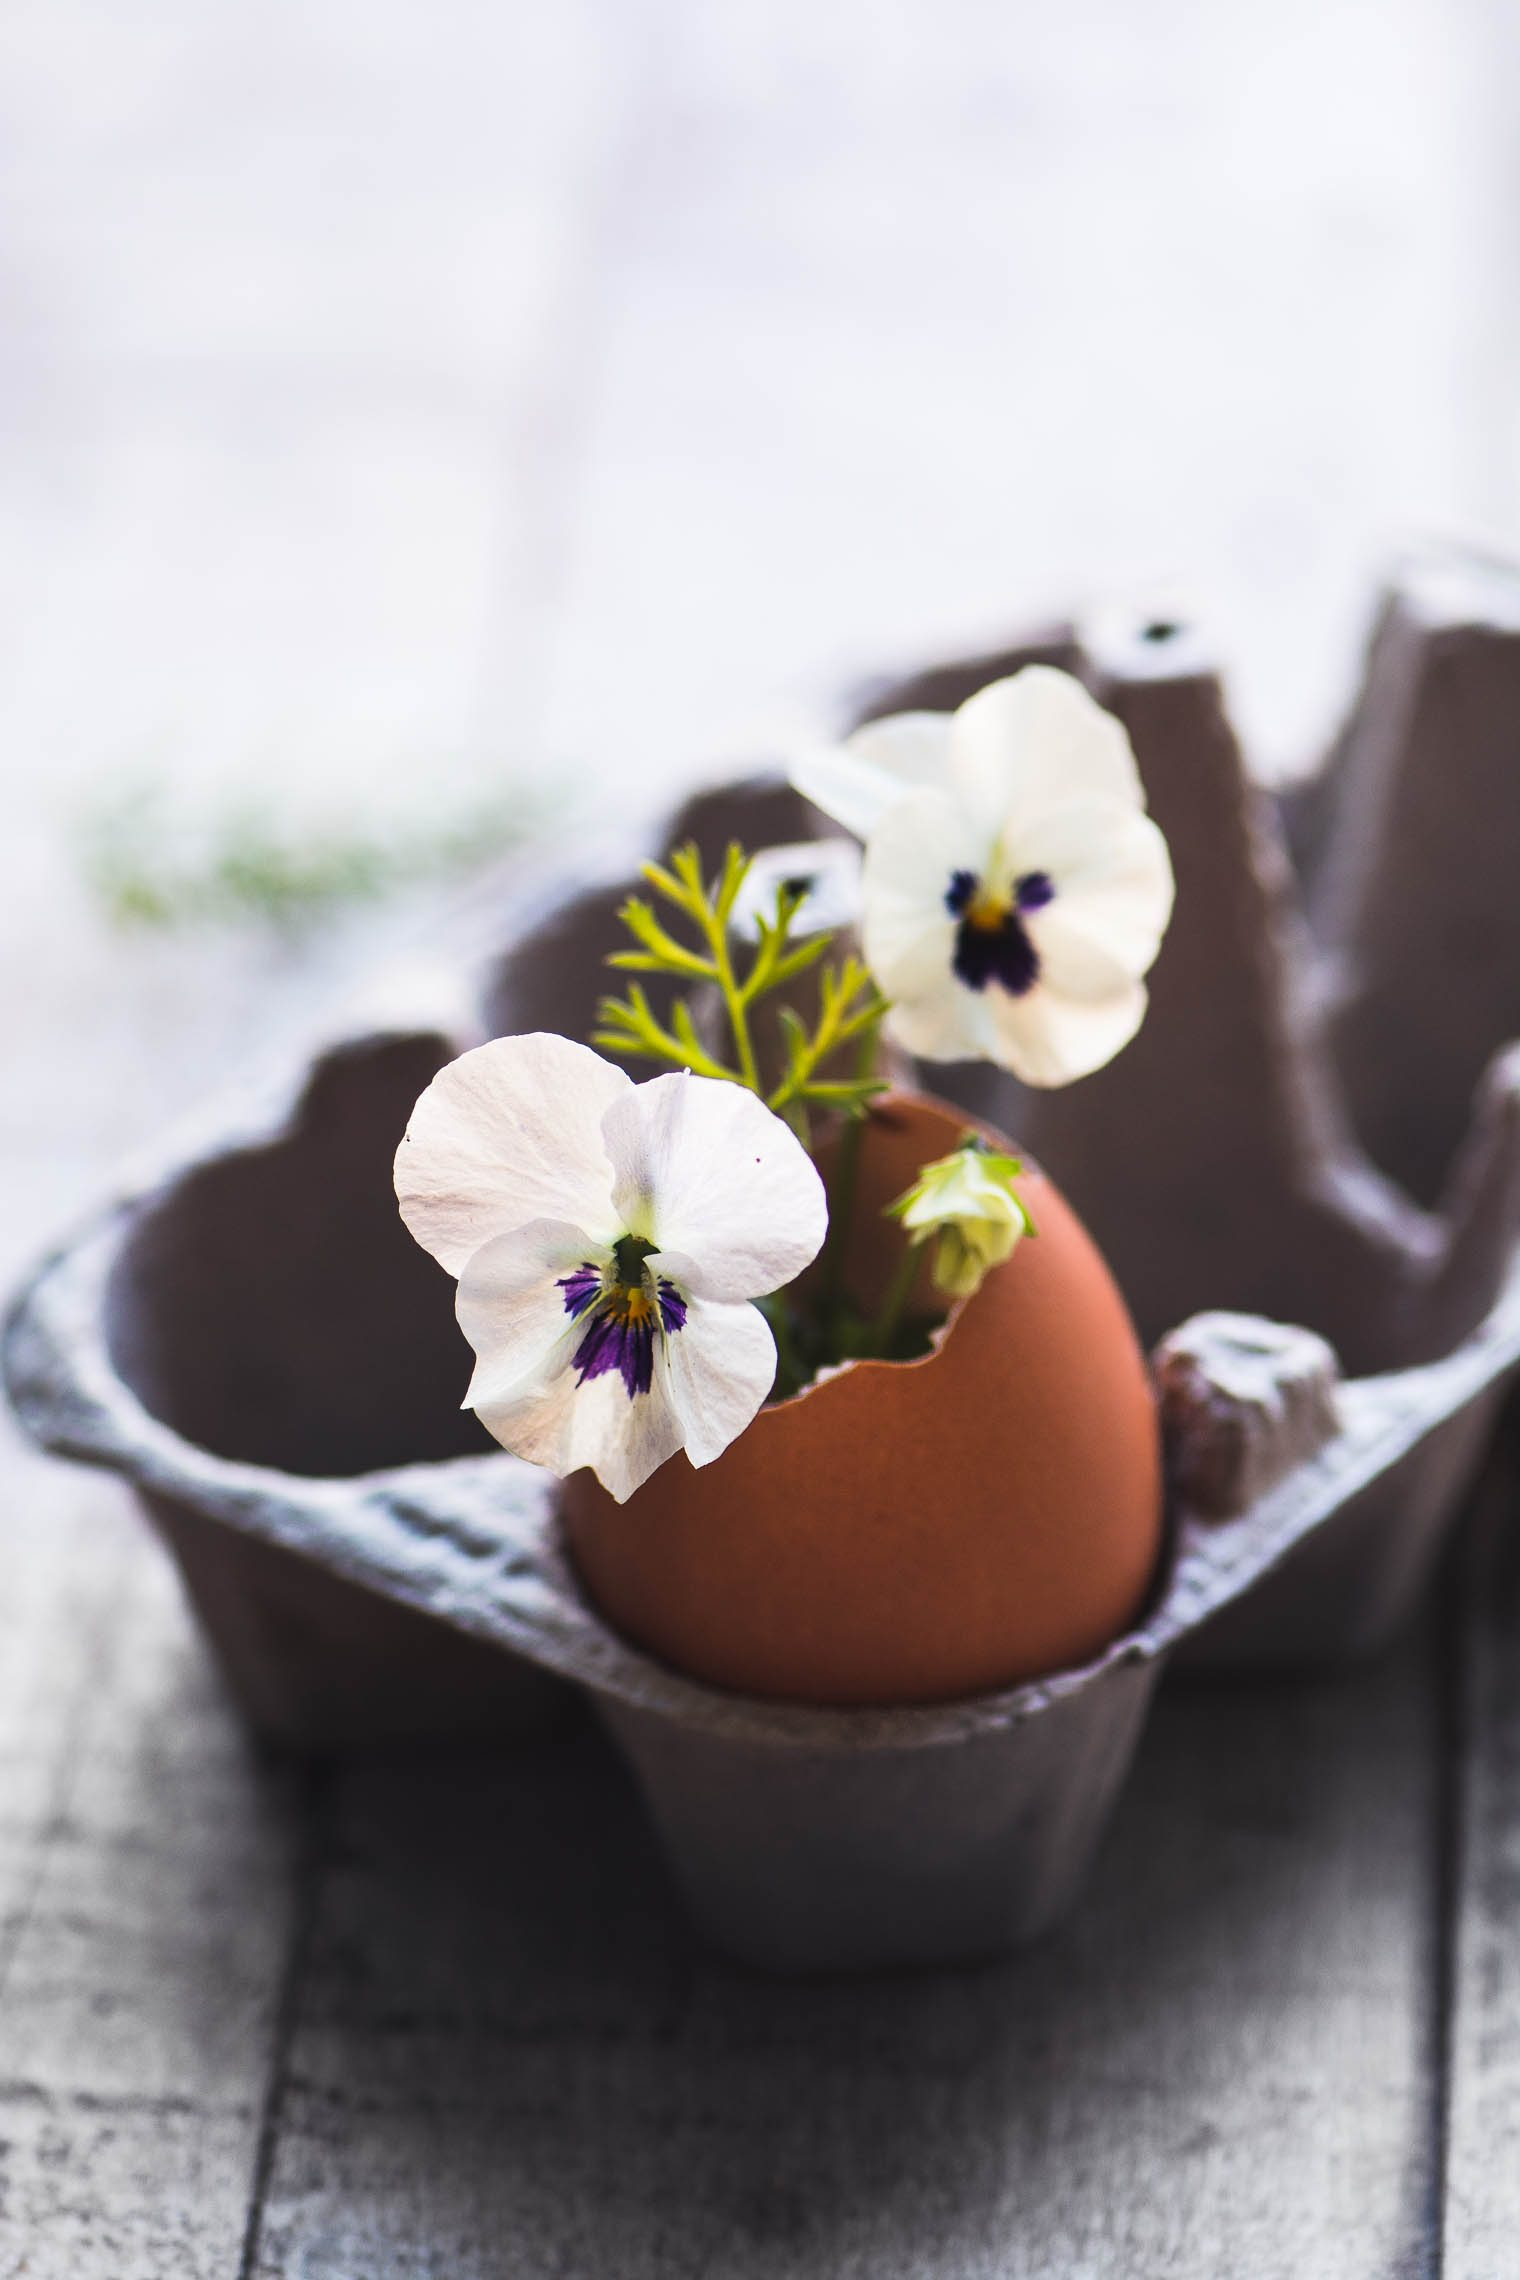 An eggshell vase with flowers sitting in an egg carton.